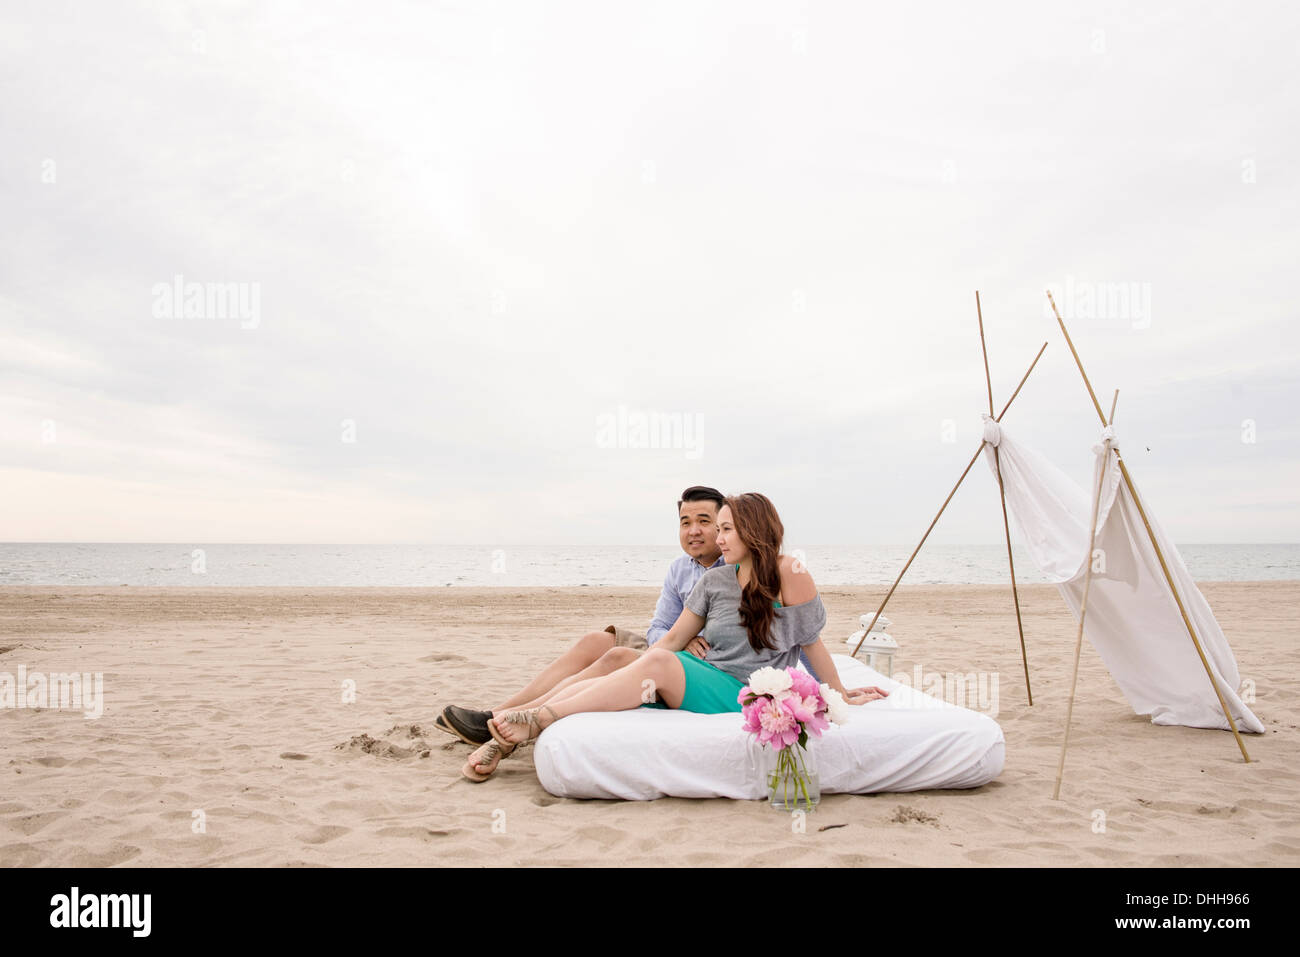 Young couple sitting on mattress canopy on beach - Stock Image